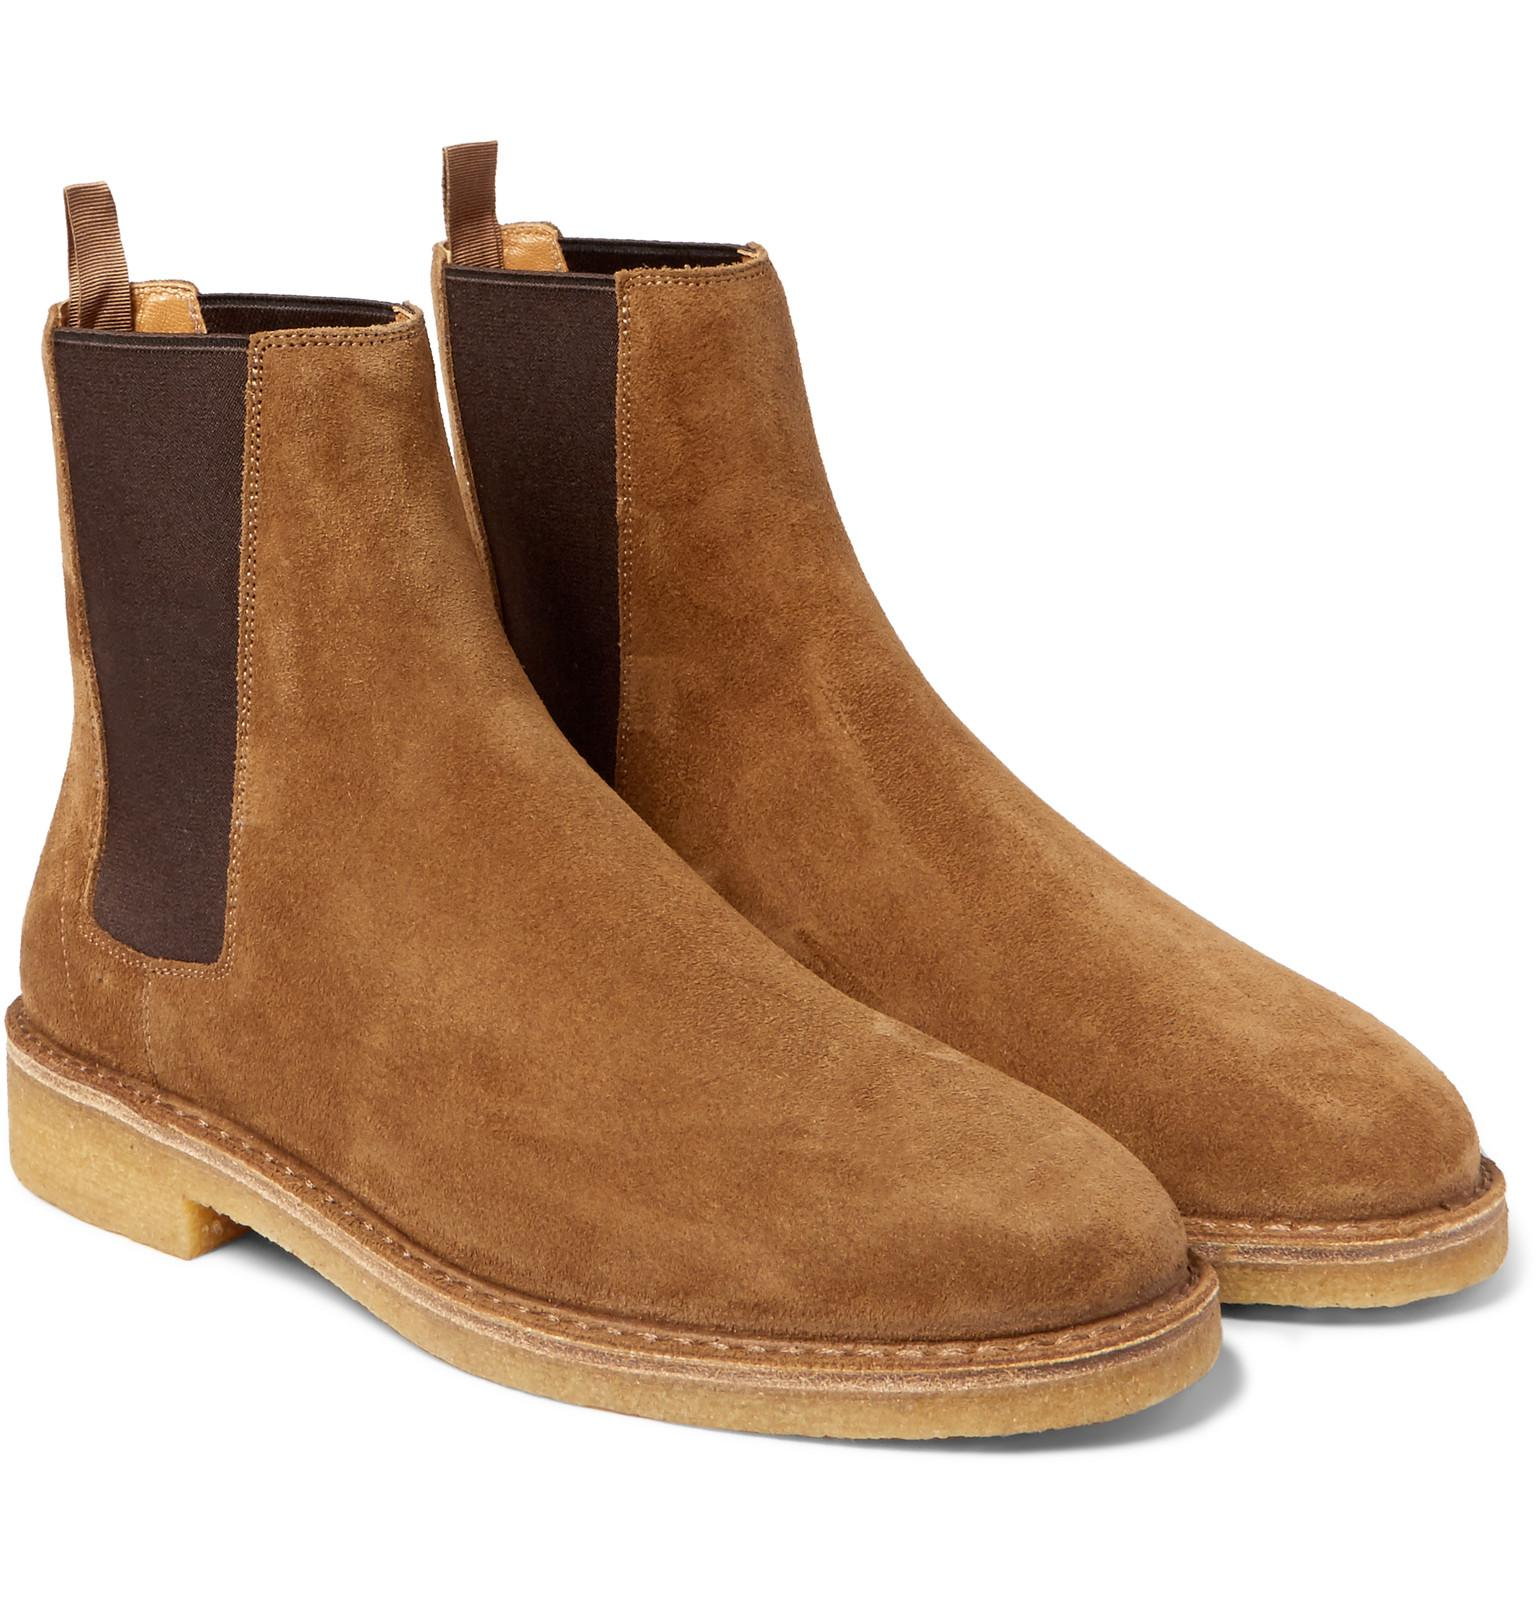 timberland chelsea boots mens sale Shop